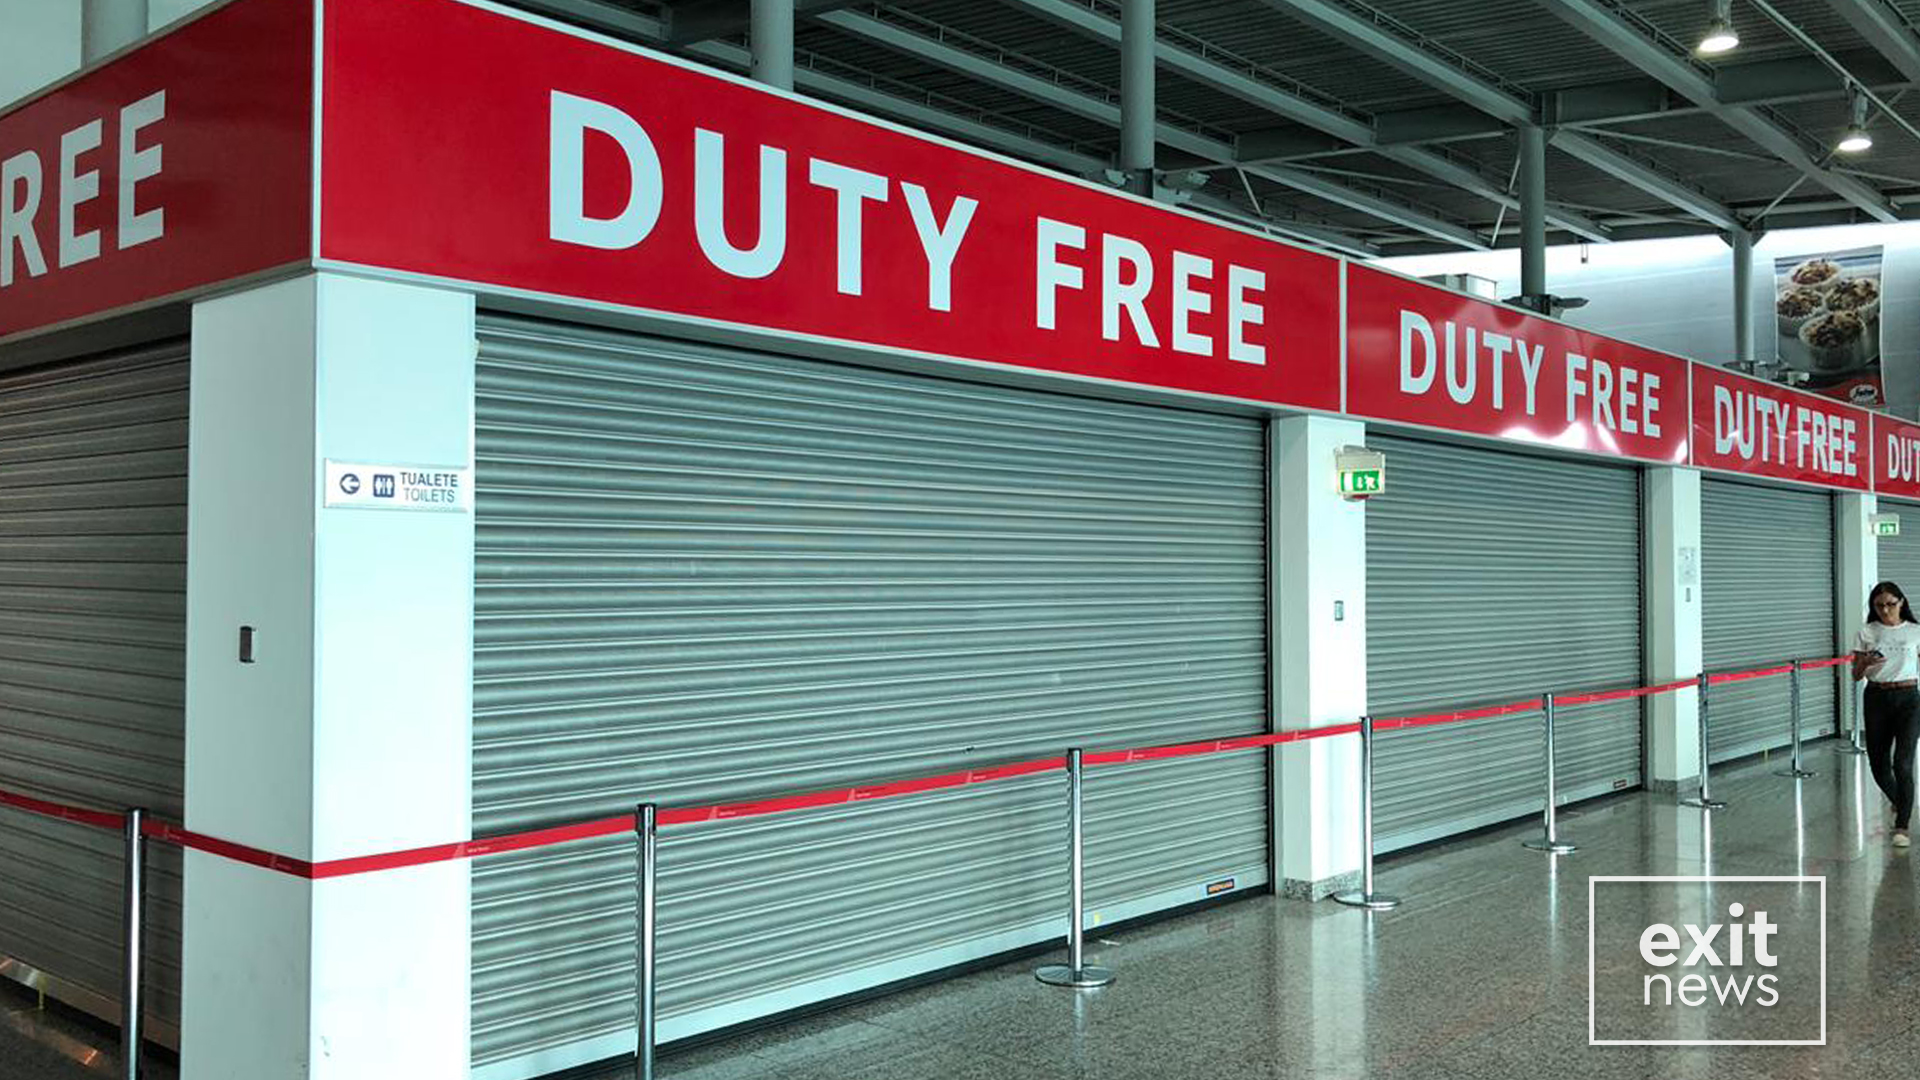 Airport Duty Free Space Conflict Shows Challenges Faced by Foreign Investors